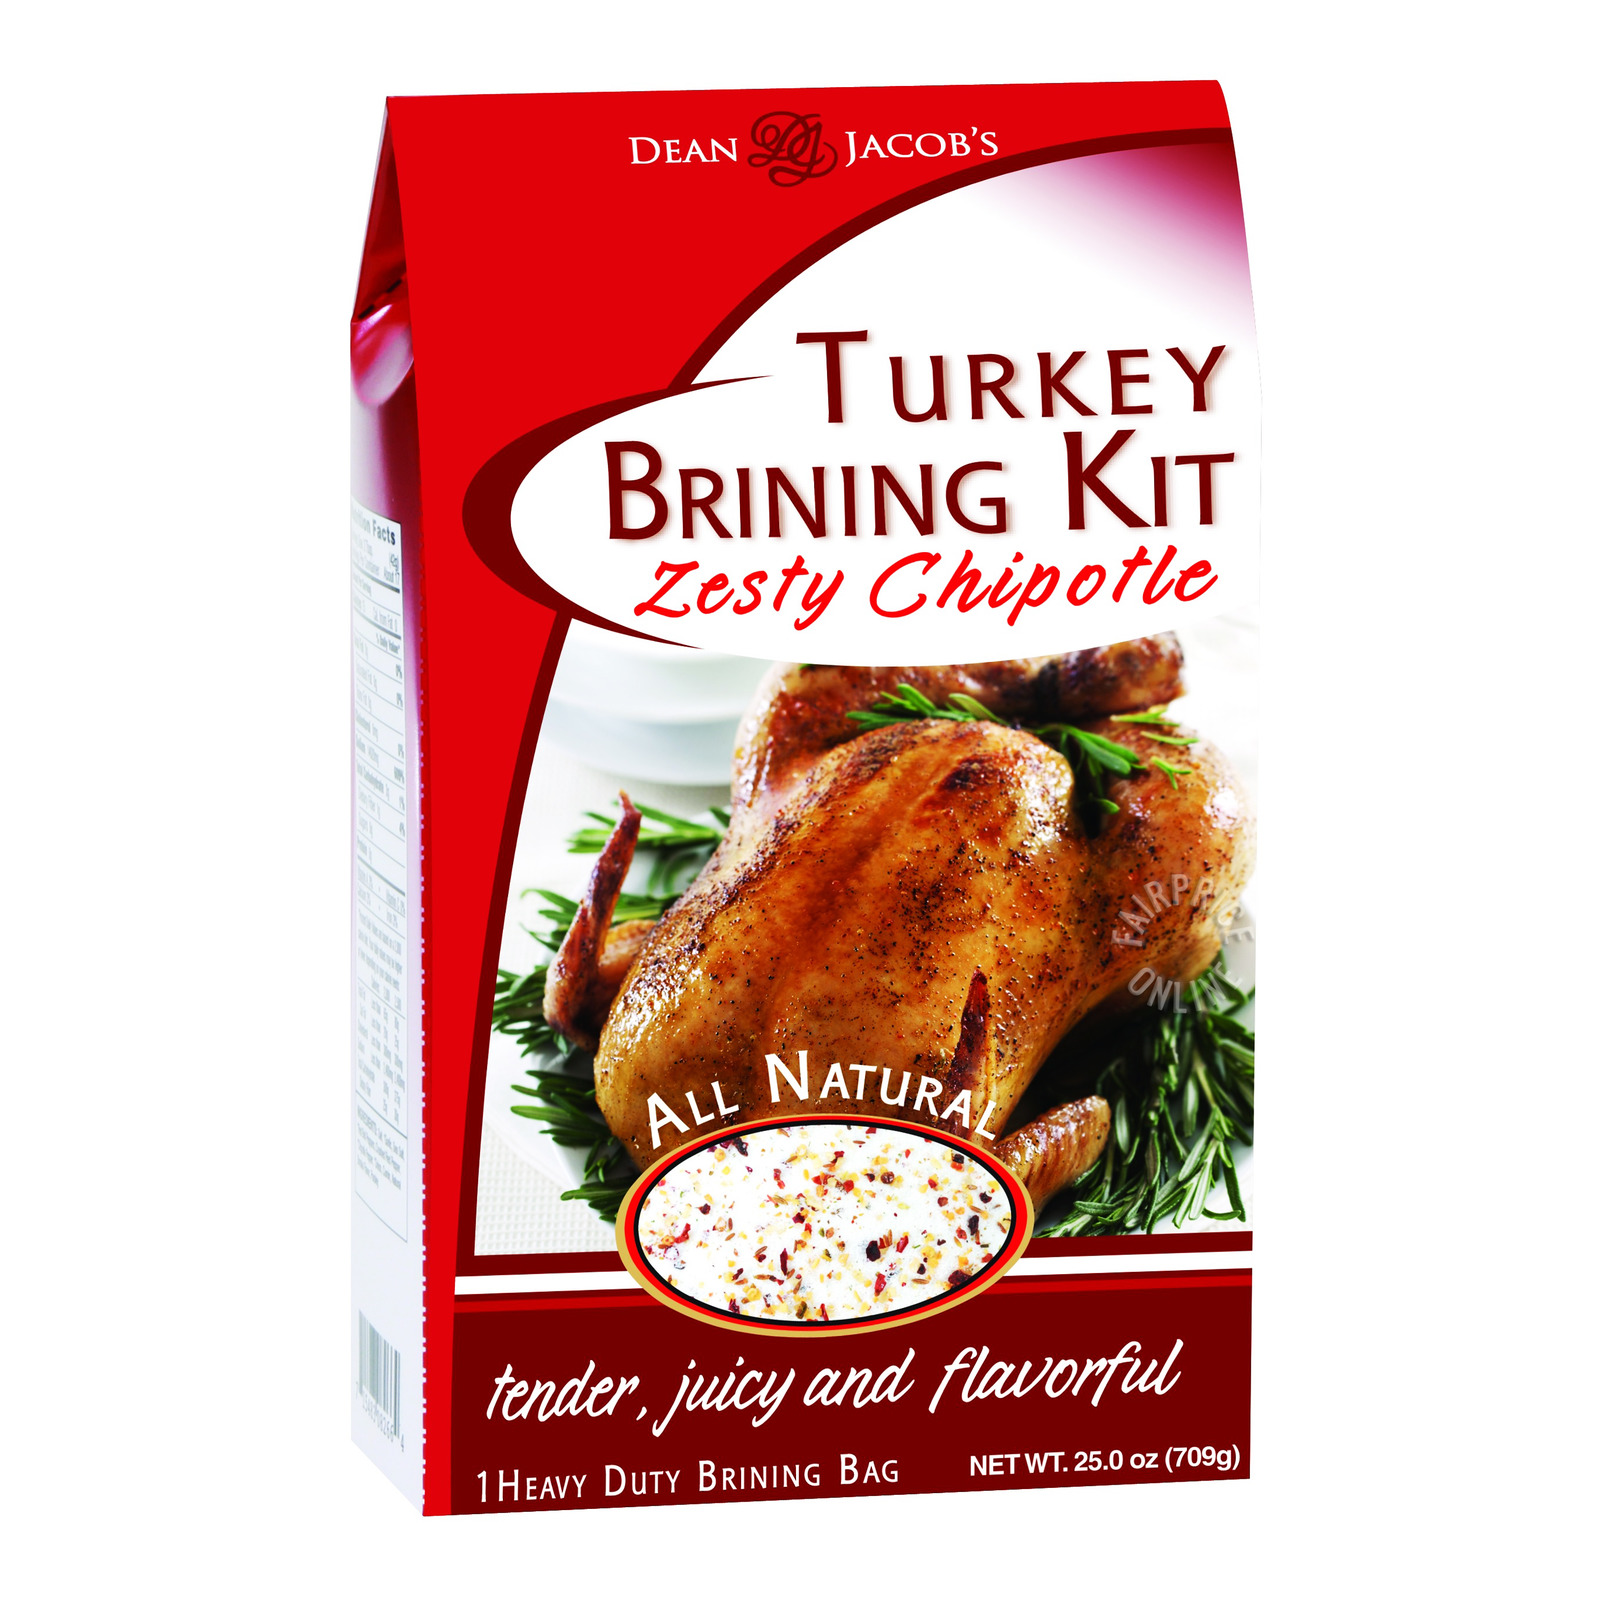 Dean & Jacob's Turkey Brining Kit - Zesty Chipotle